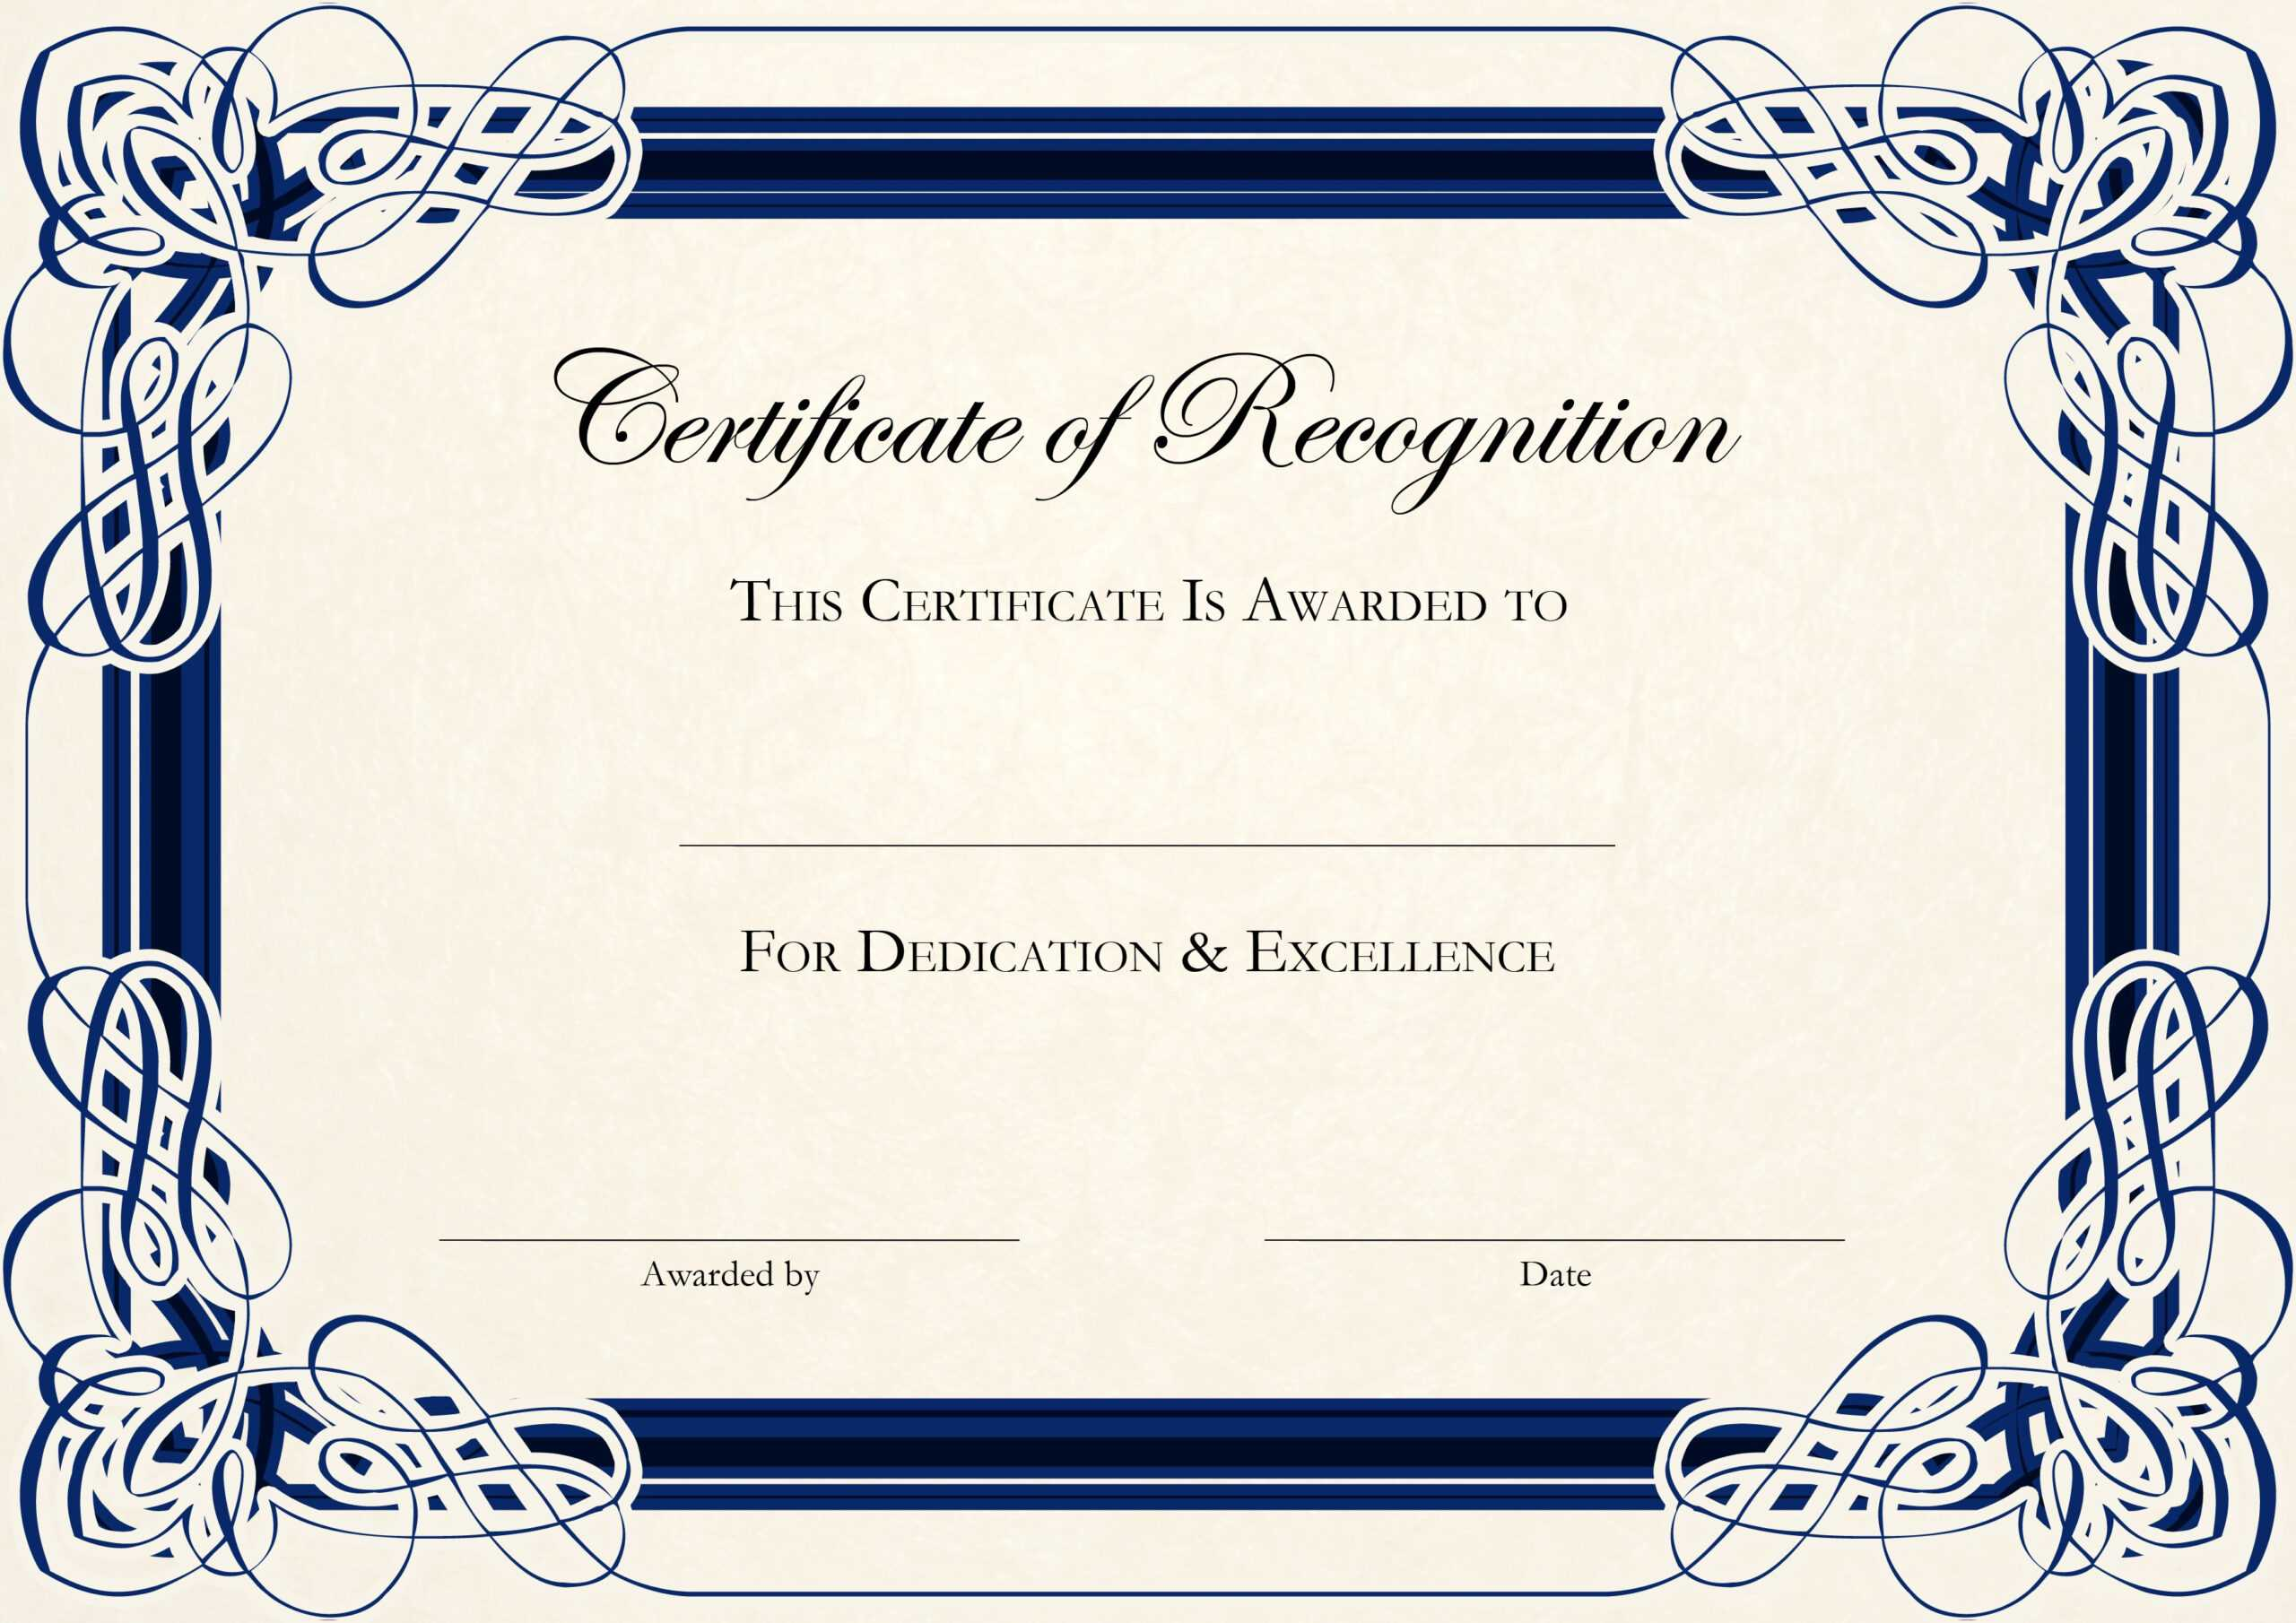 Free Certificate Templates For Word With Certificate Templates For Word Free Downloads